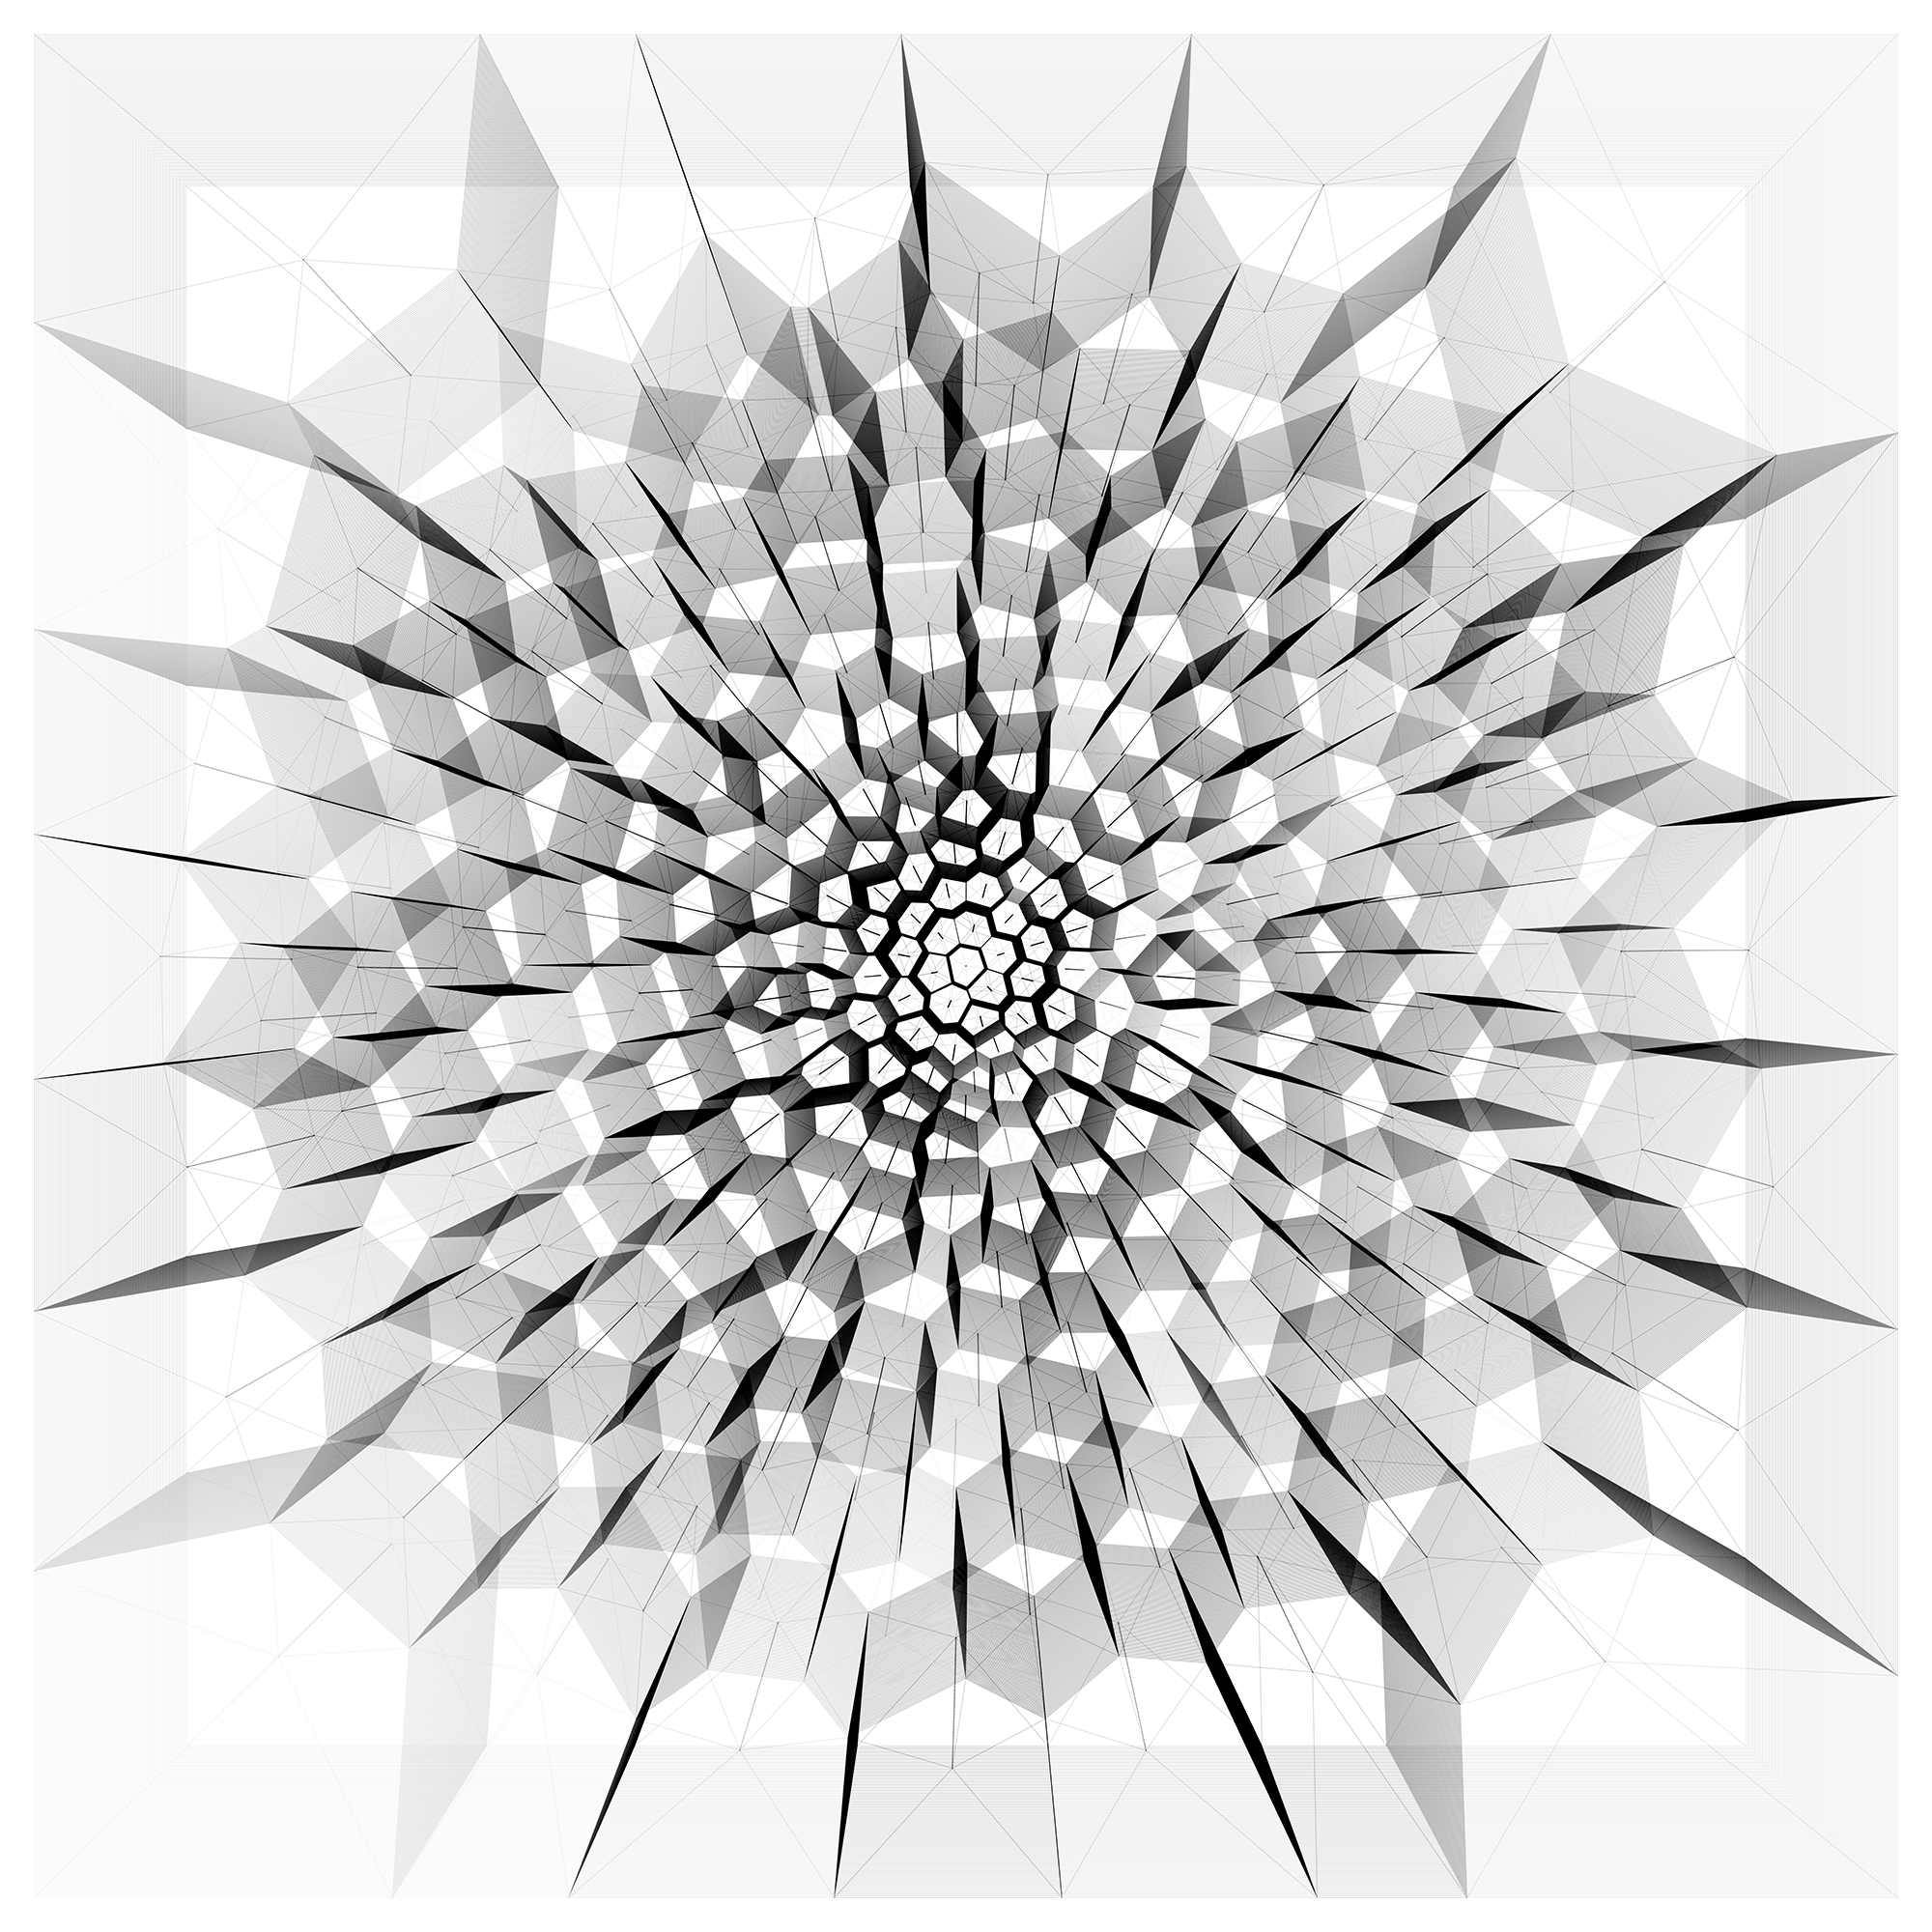 Voronoi2Layer-2015-04-28-19-29-32-774_high.png